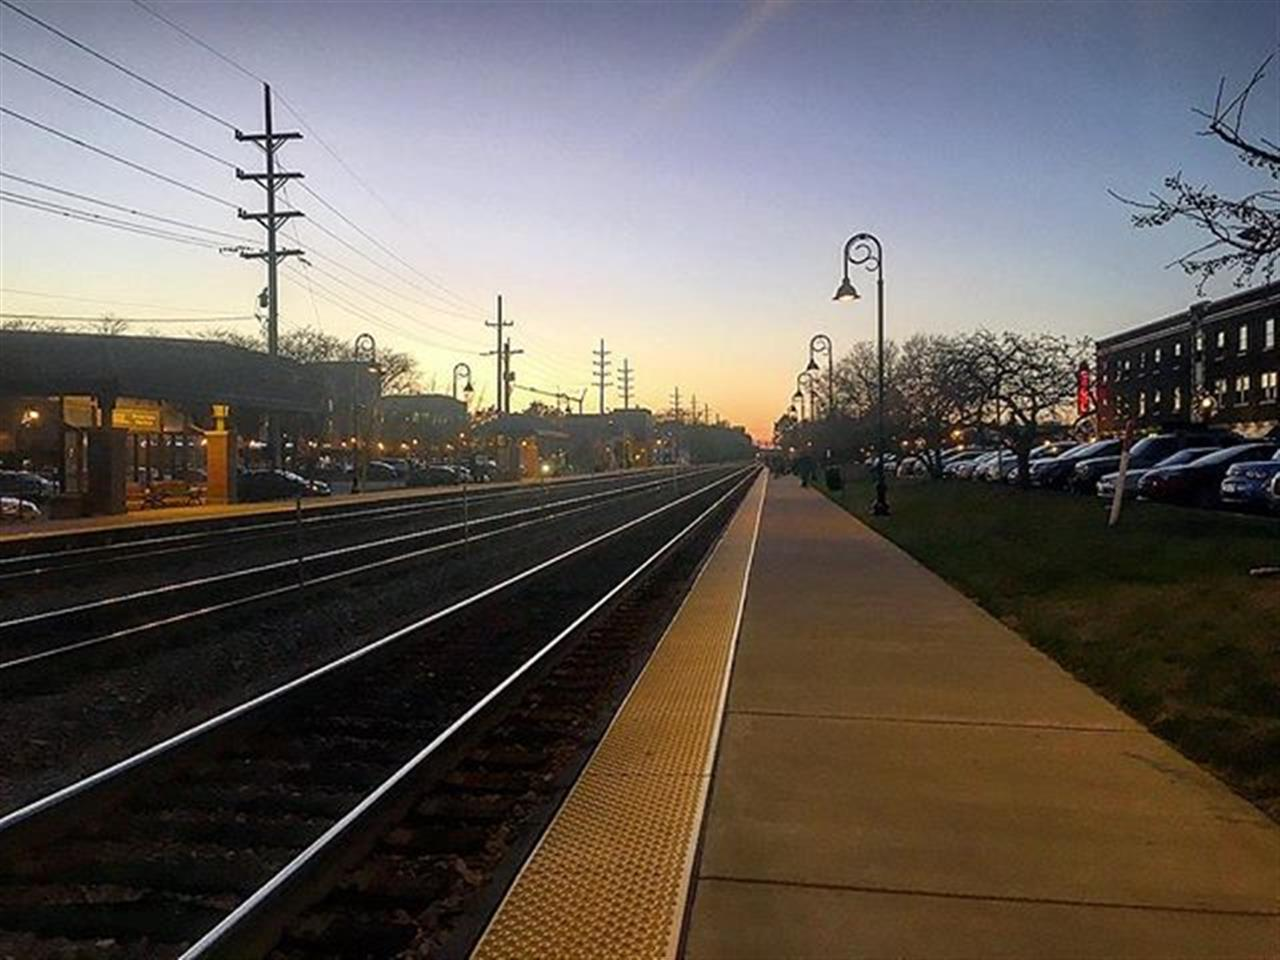 Chicago's suburbs follow the train tracks. Downers Grove's downtown is split by the tracks. On either side are restraints, shops, a theater, library parks and more. #chicagosuburbs #metra #downersgrovd #westernsuburbs #leadinrelocal #bairdwarner #bnsf #sunset #tivolitheatre #everydaysasunday